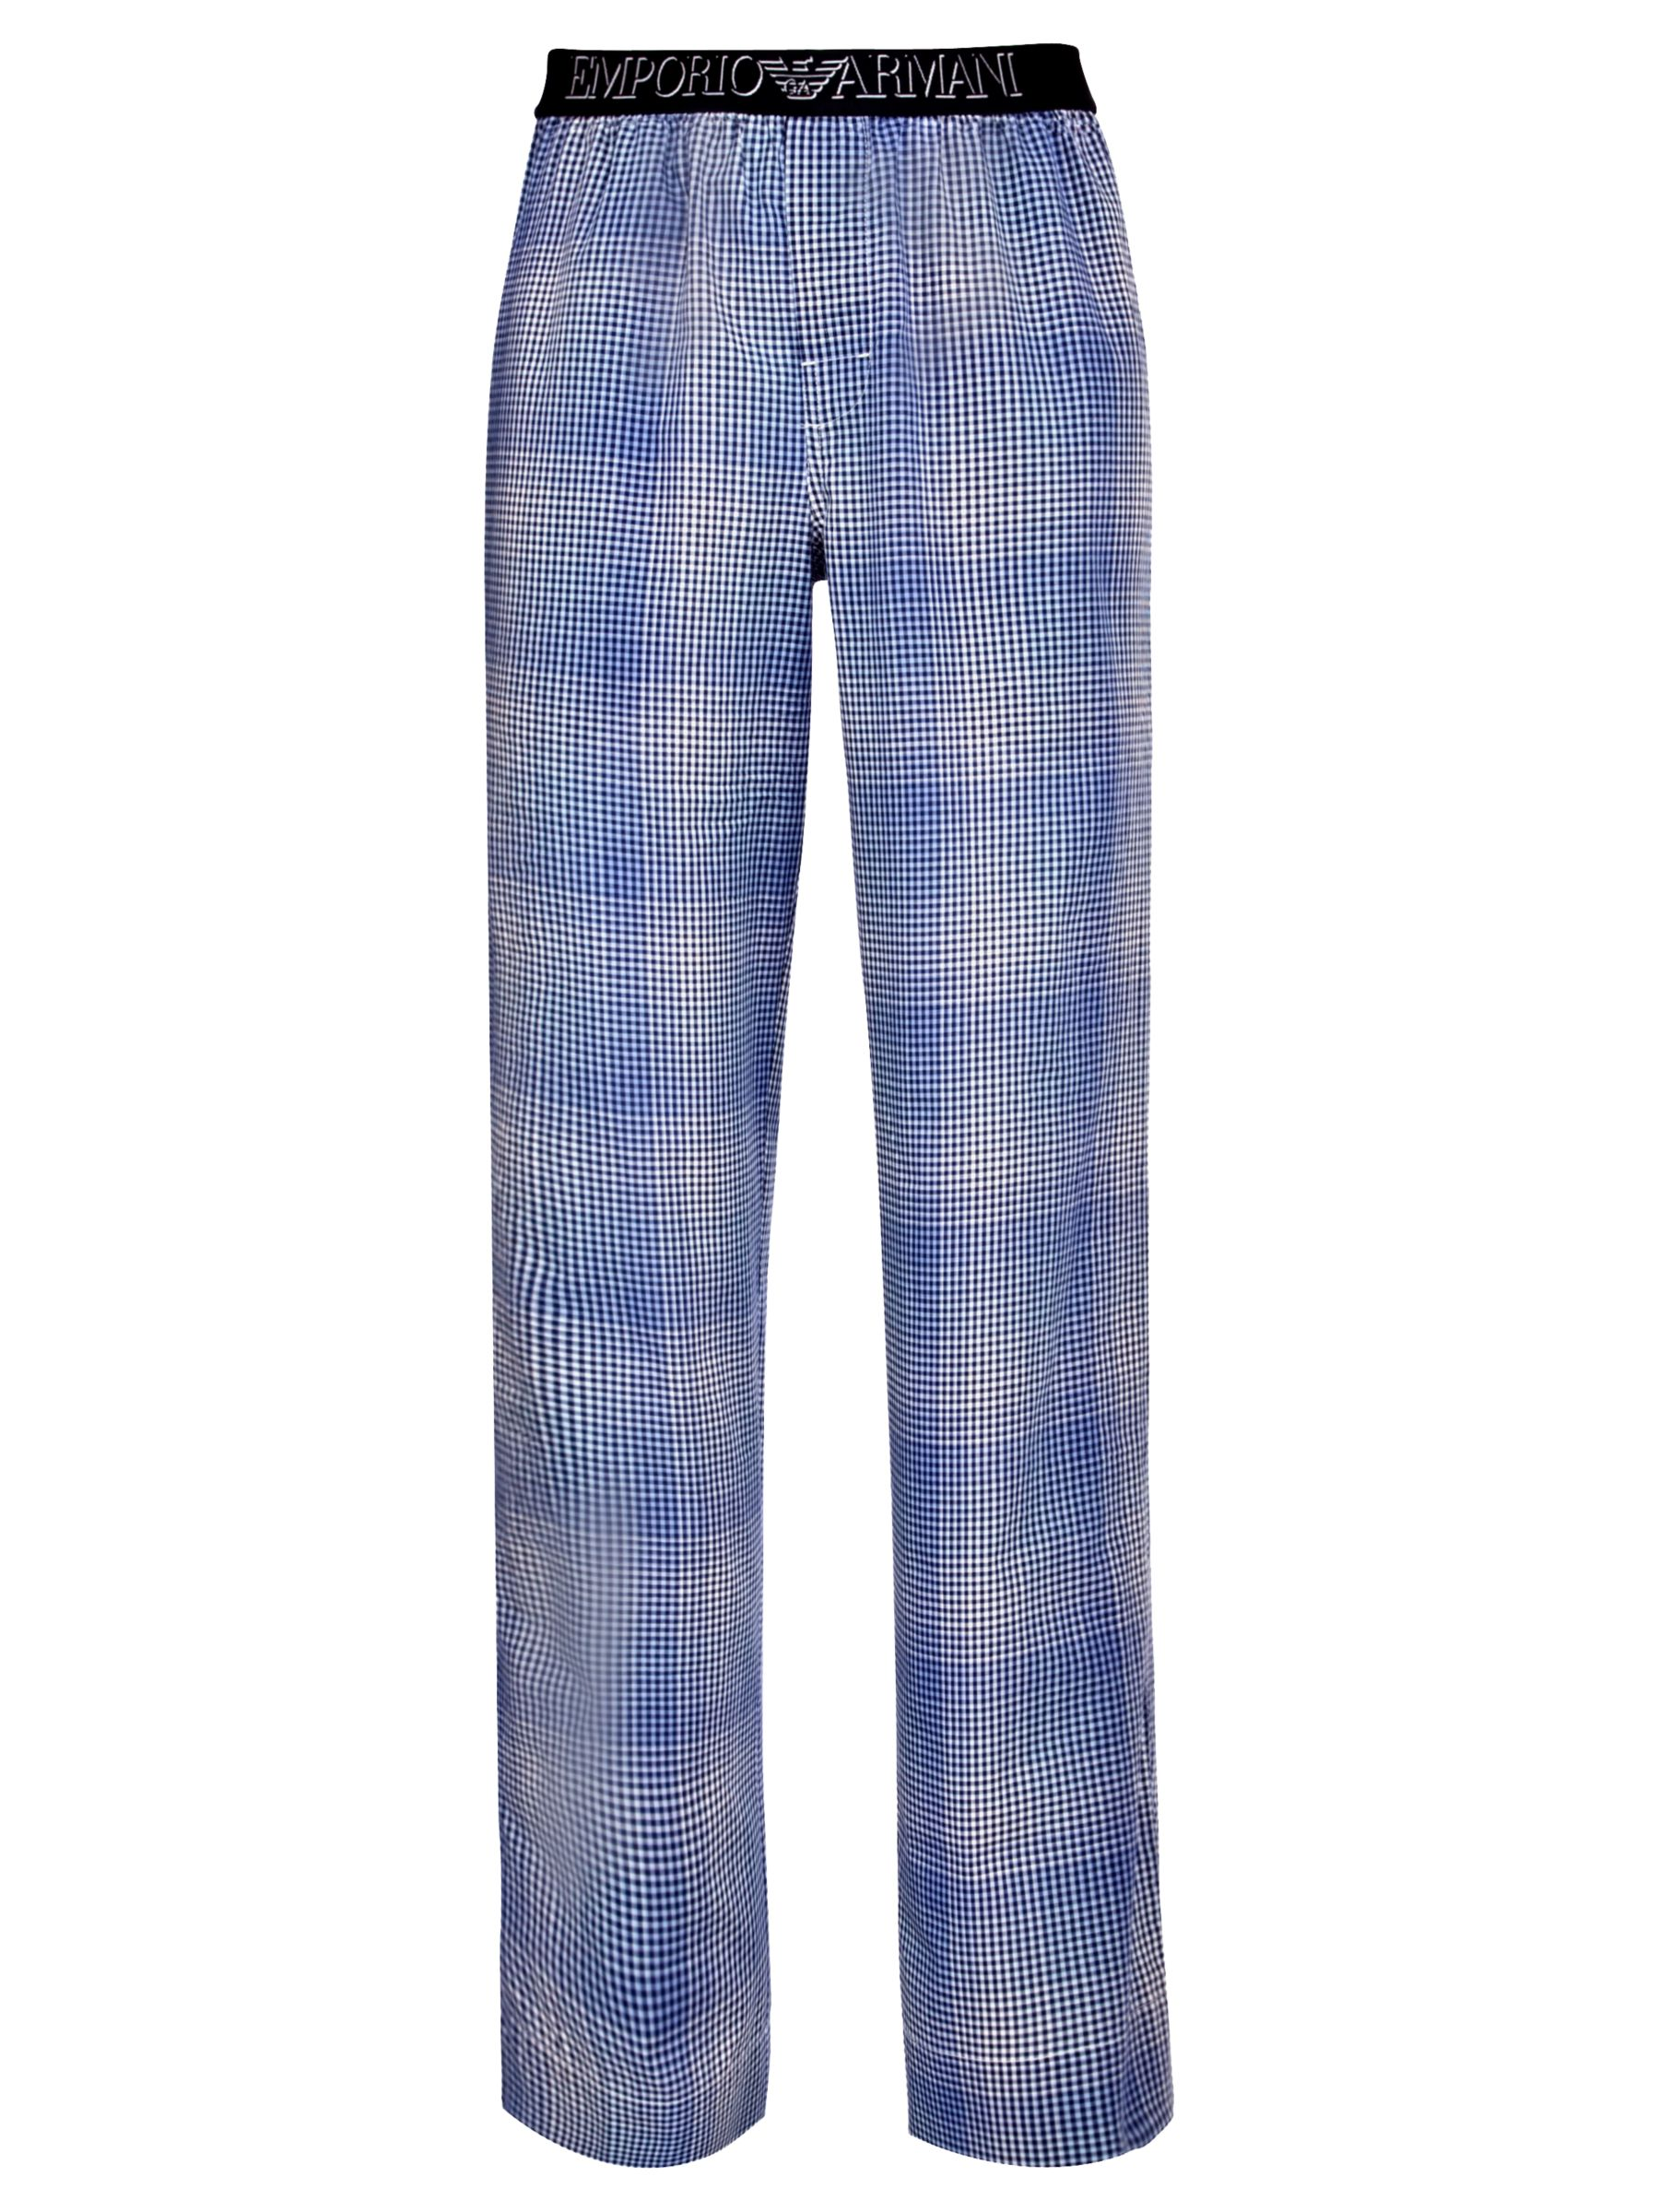 Emporio Armani Woven Gingham Lounge Pants, Navy